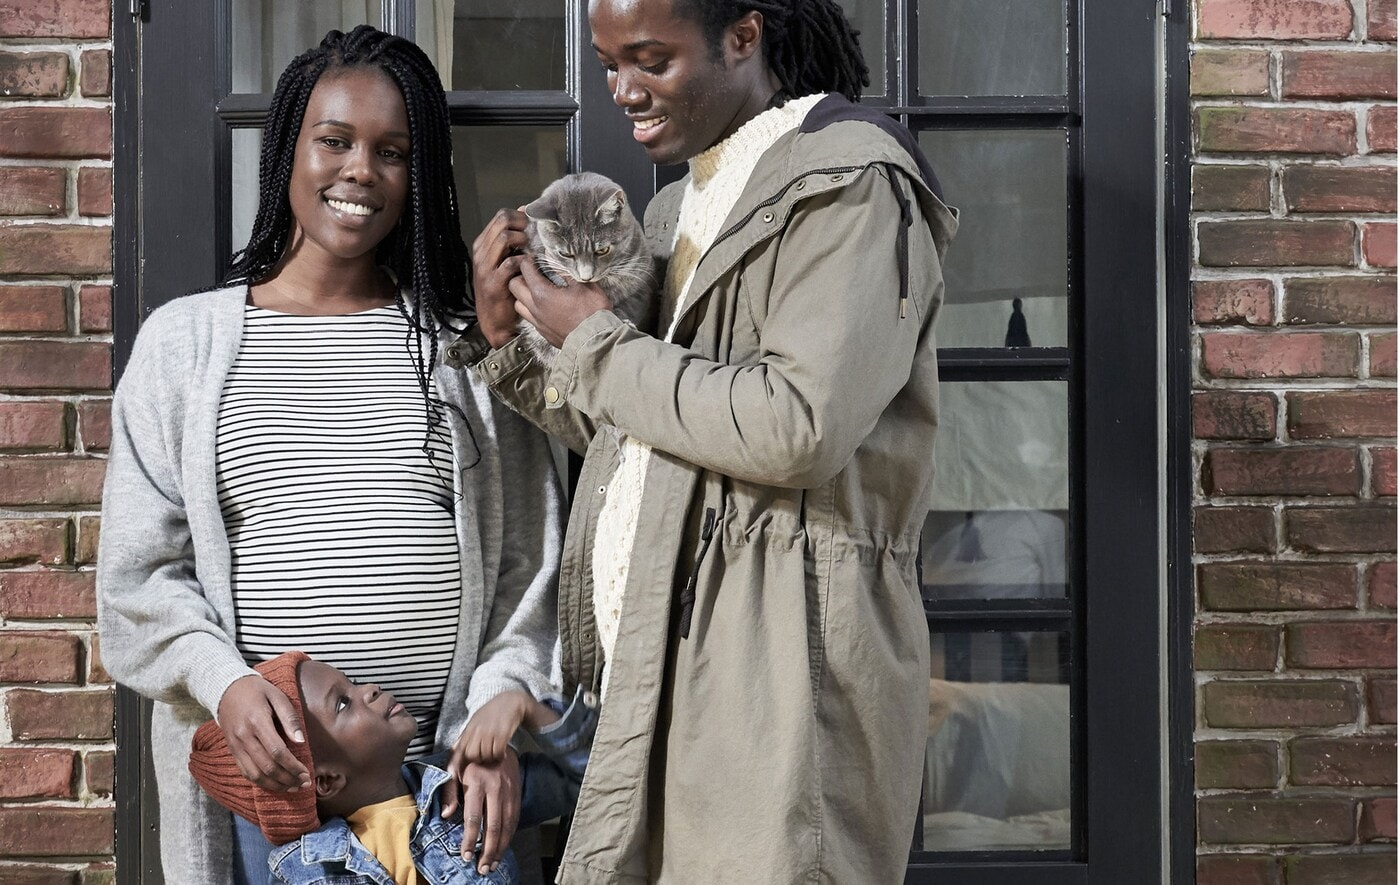 Link to IDEA 'Living for the little things' - image of a young family with man, pregnant woman, small boy, and grey cat.